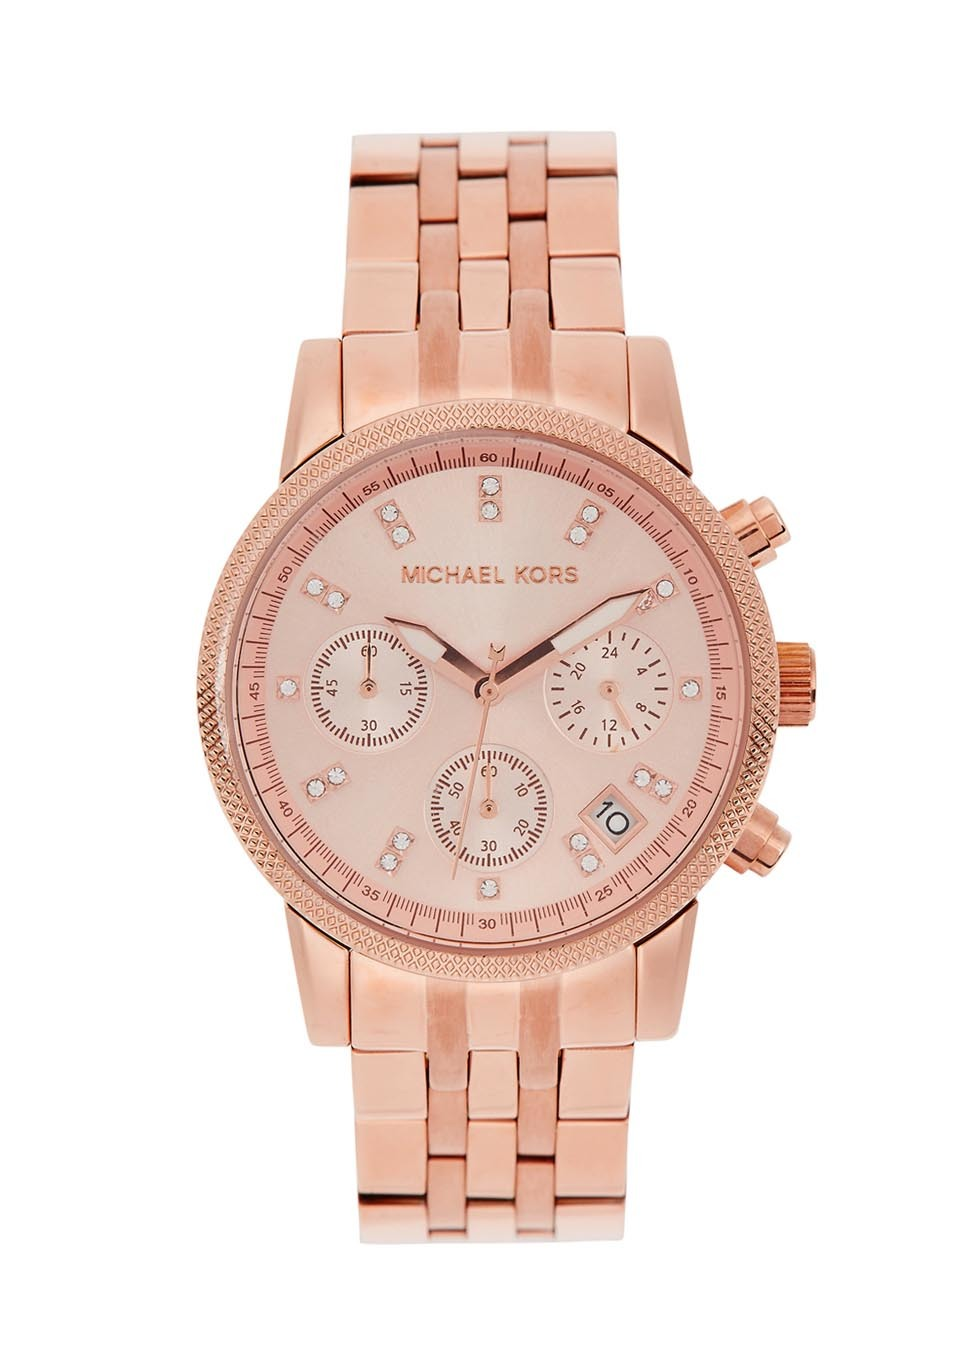 Ritz Rose Gold Tone Chronograph Watch - predominant colour: gold; occasions: work, creative work; style: boyfriend; size: large/oversized; material: chain/metal; finish: plain; pattern: plain; season: a/w 2015